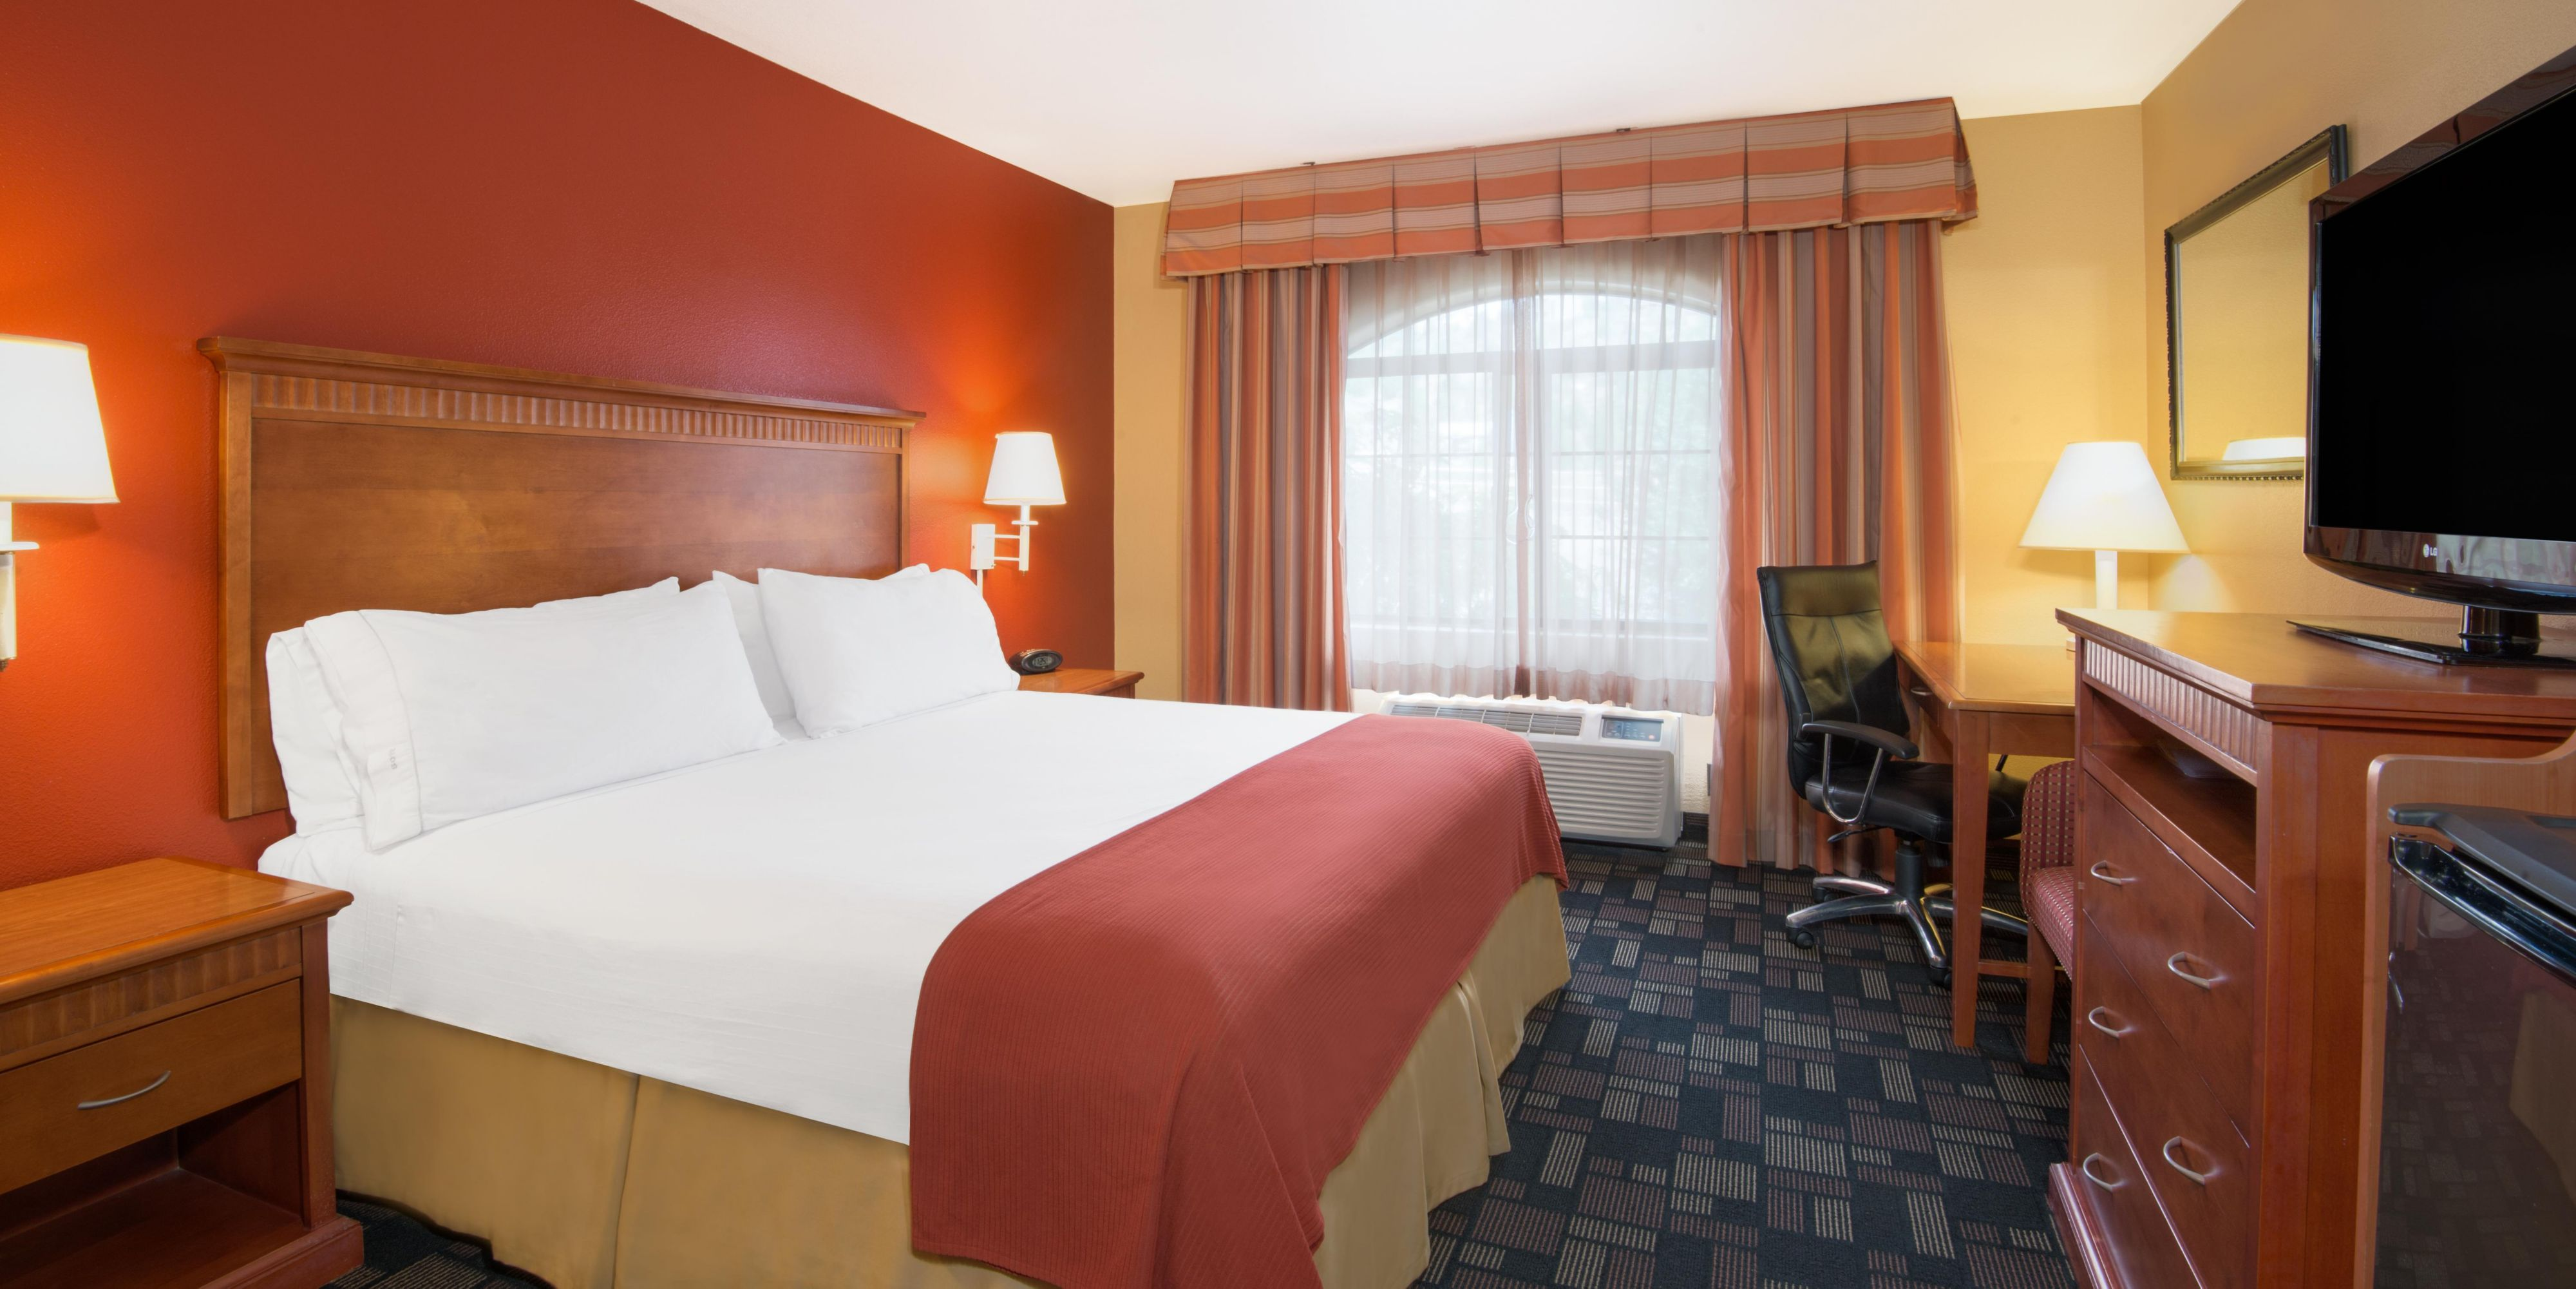 Holiday Inn Express Prescott 3986193545 2x1